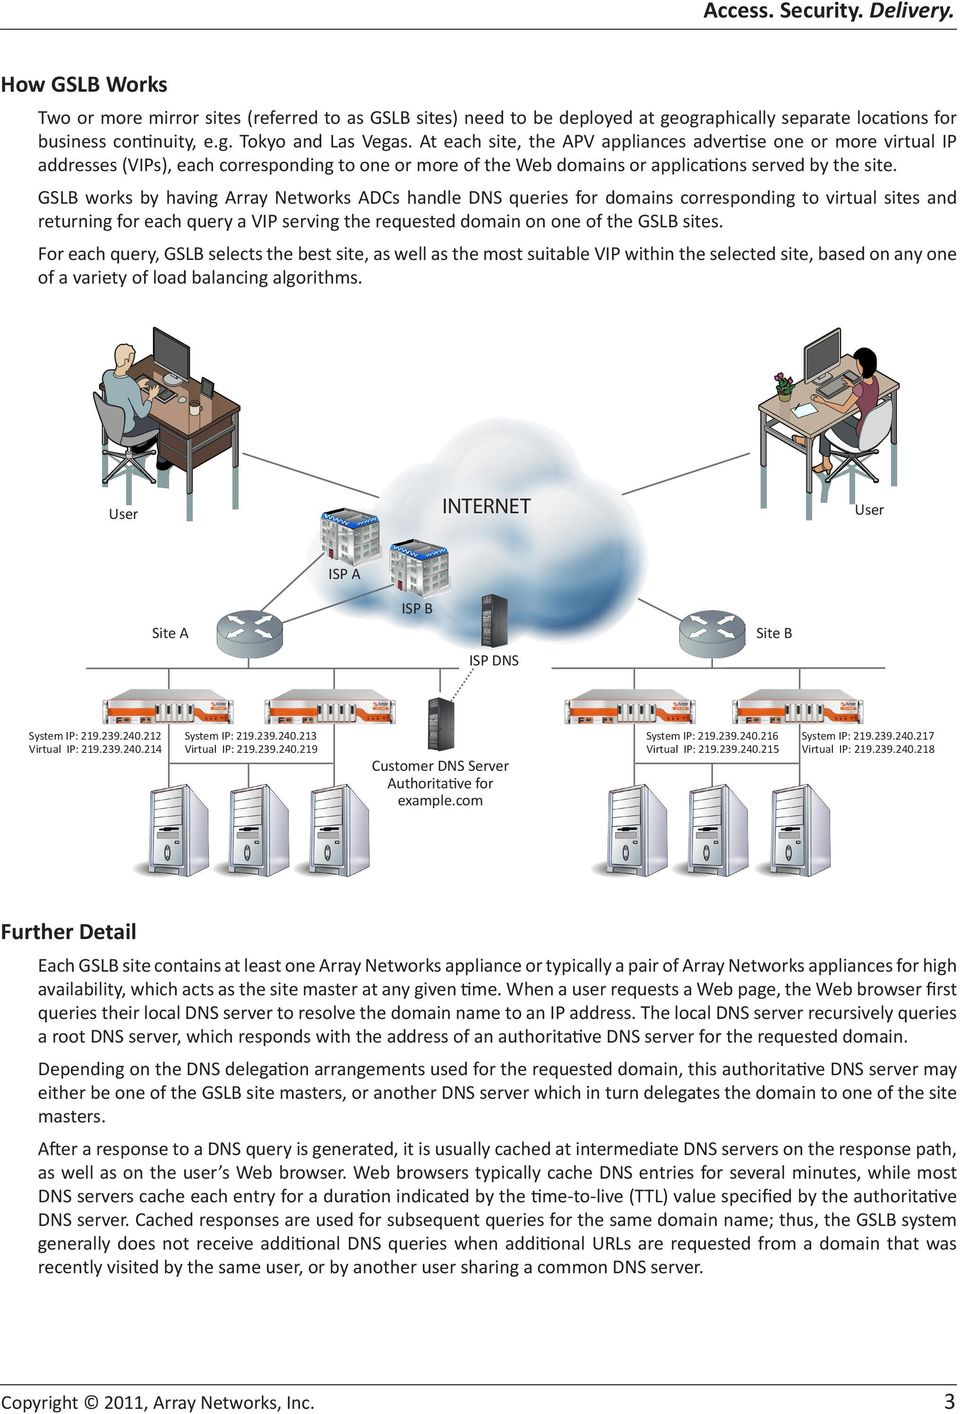 GSLB works by having Array Networks ADCs handle DNS queries for domains corresponding to virtual sites and returning for each query a VIP serving the requested domain on one of the GSLB sites.